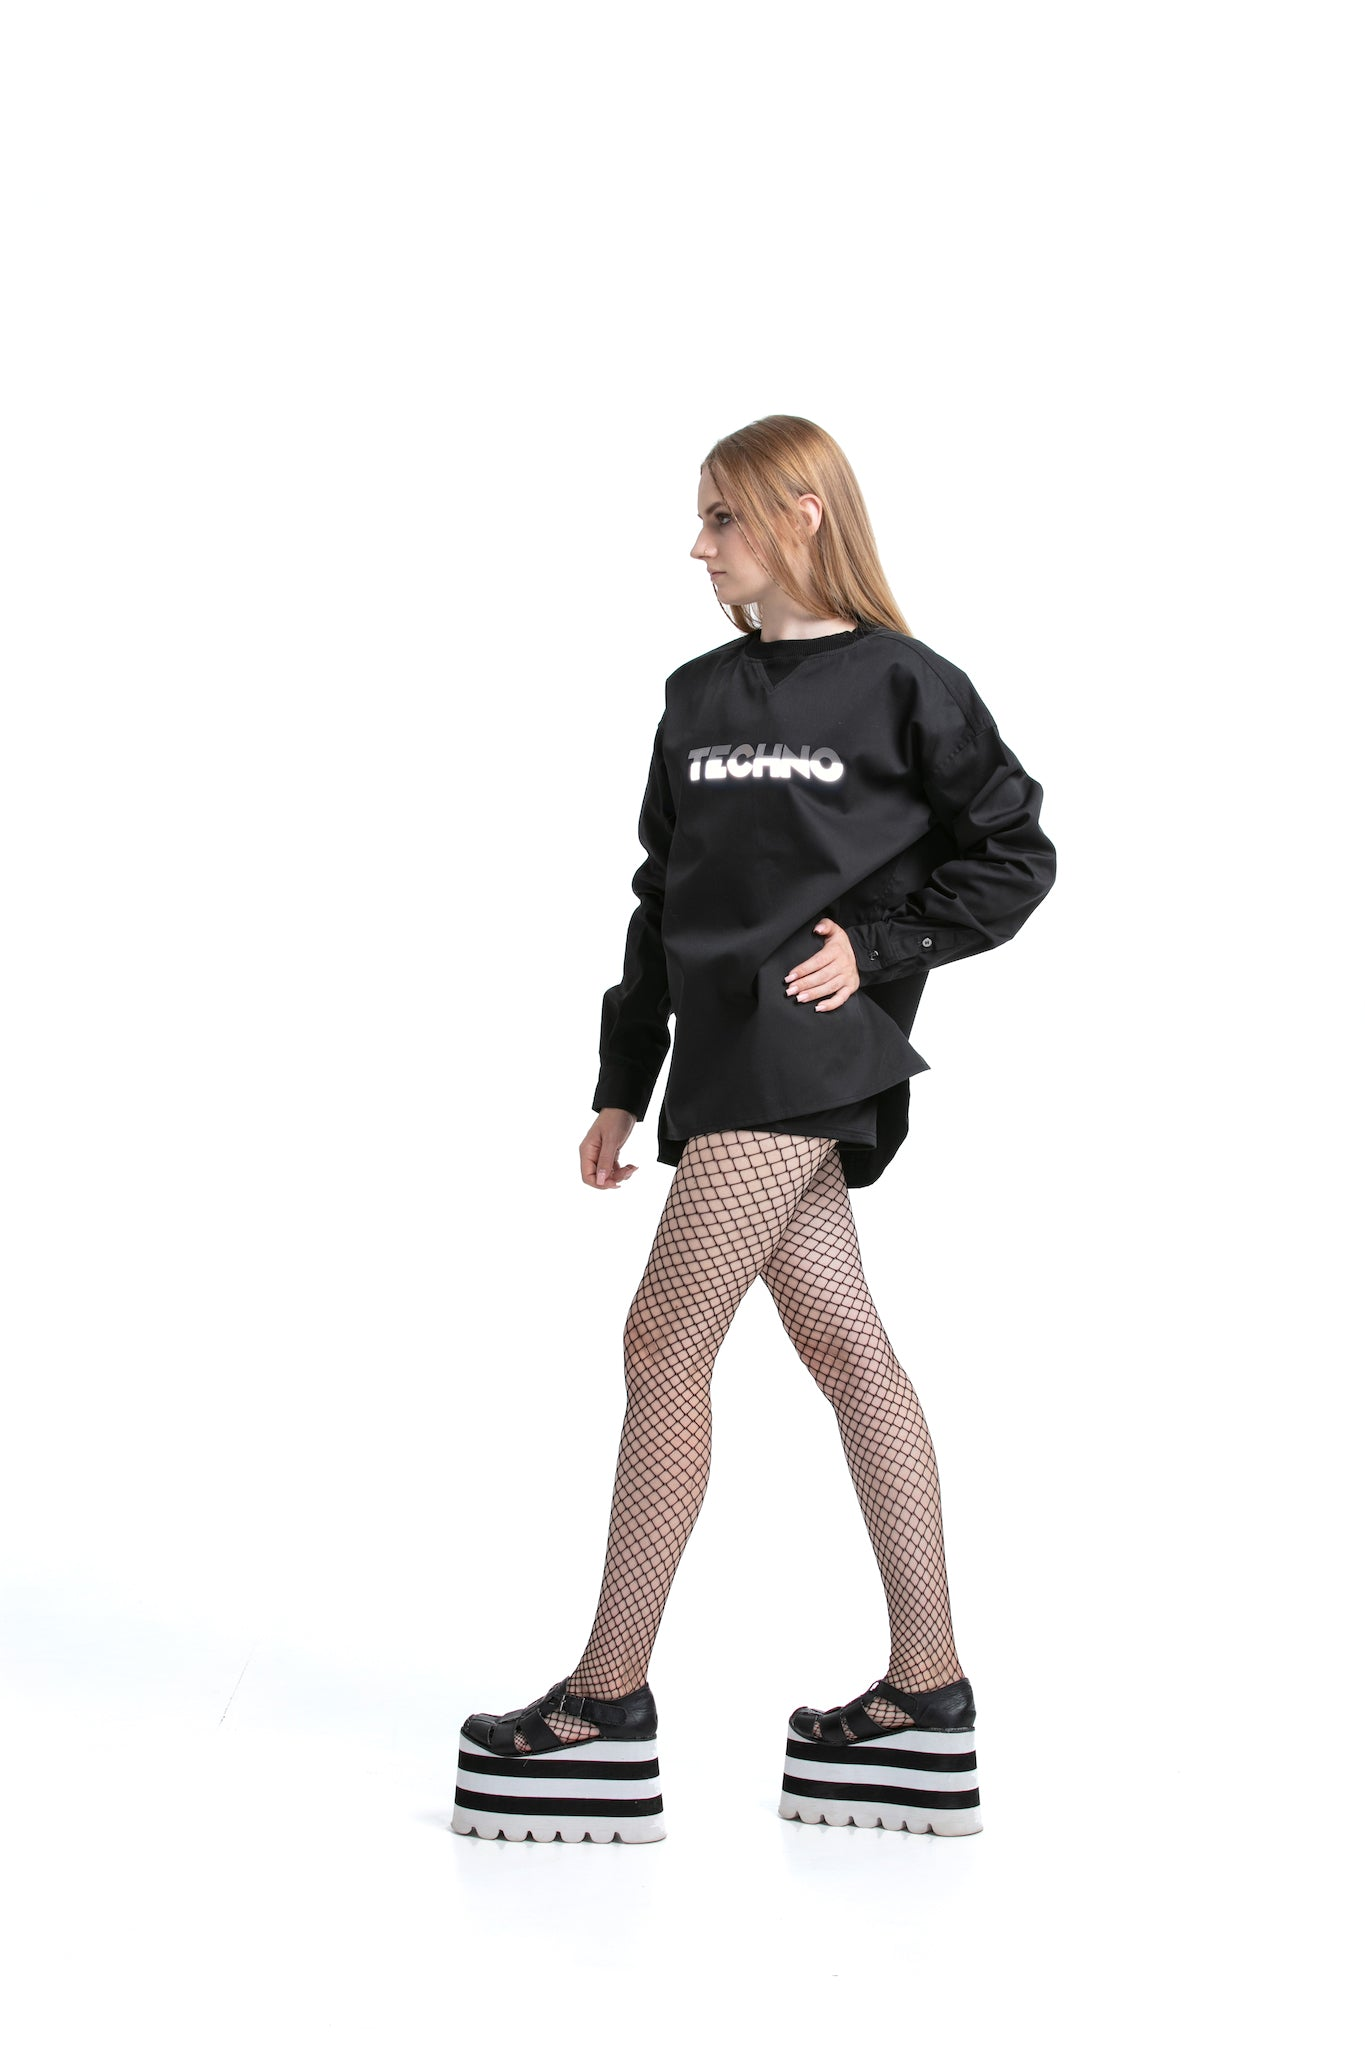 Reflective Techno - Smart Sweatshirt